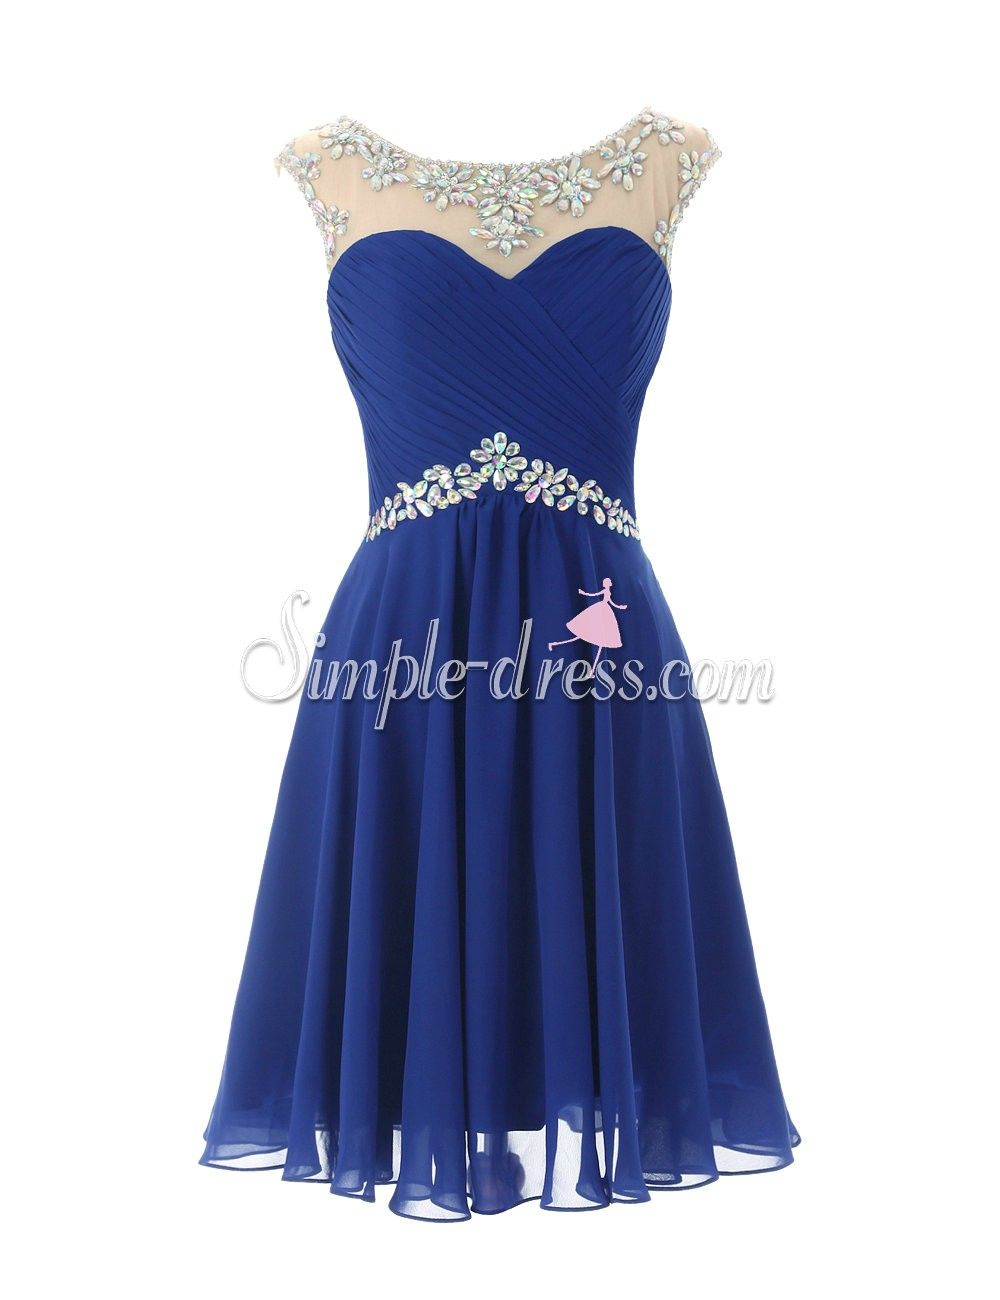 Lovedressorenvycollectionshomecomingdresses